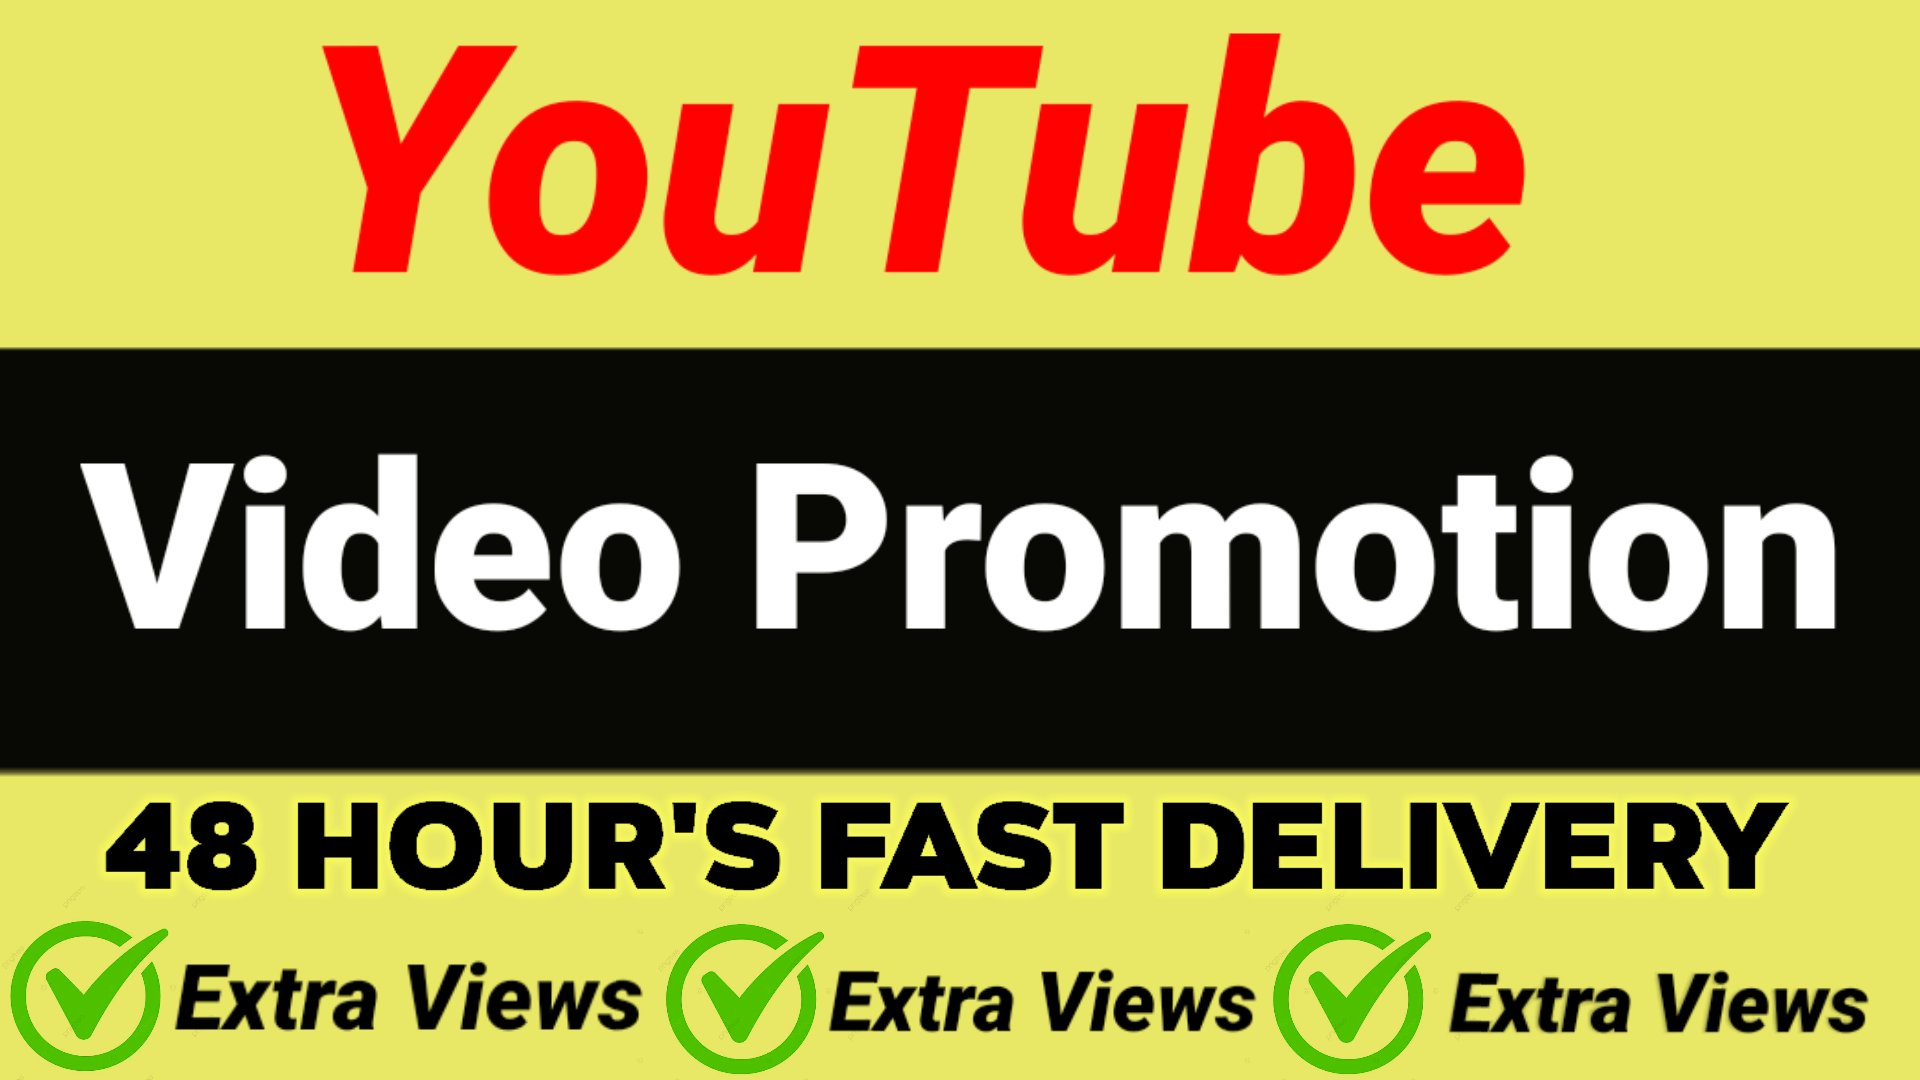 YouTube video promotion 48 hours fast delivery